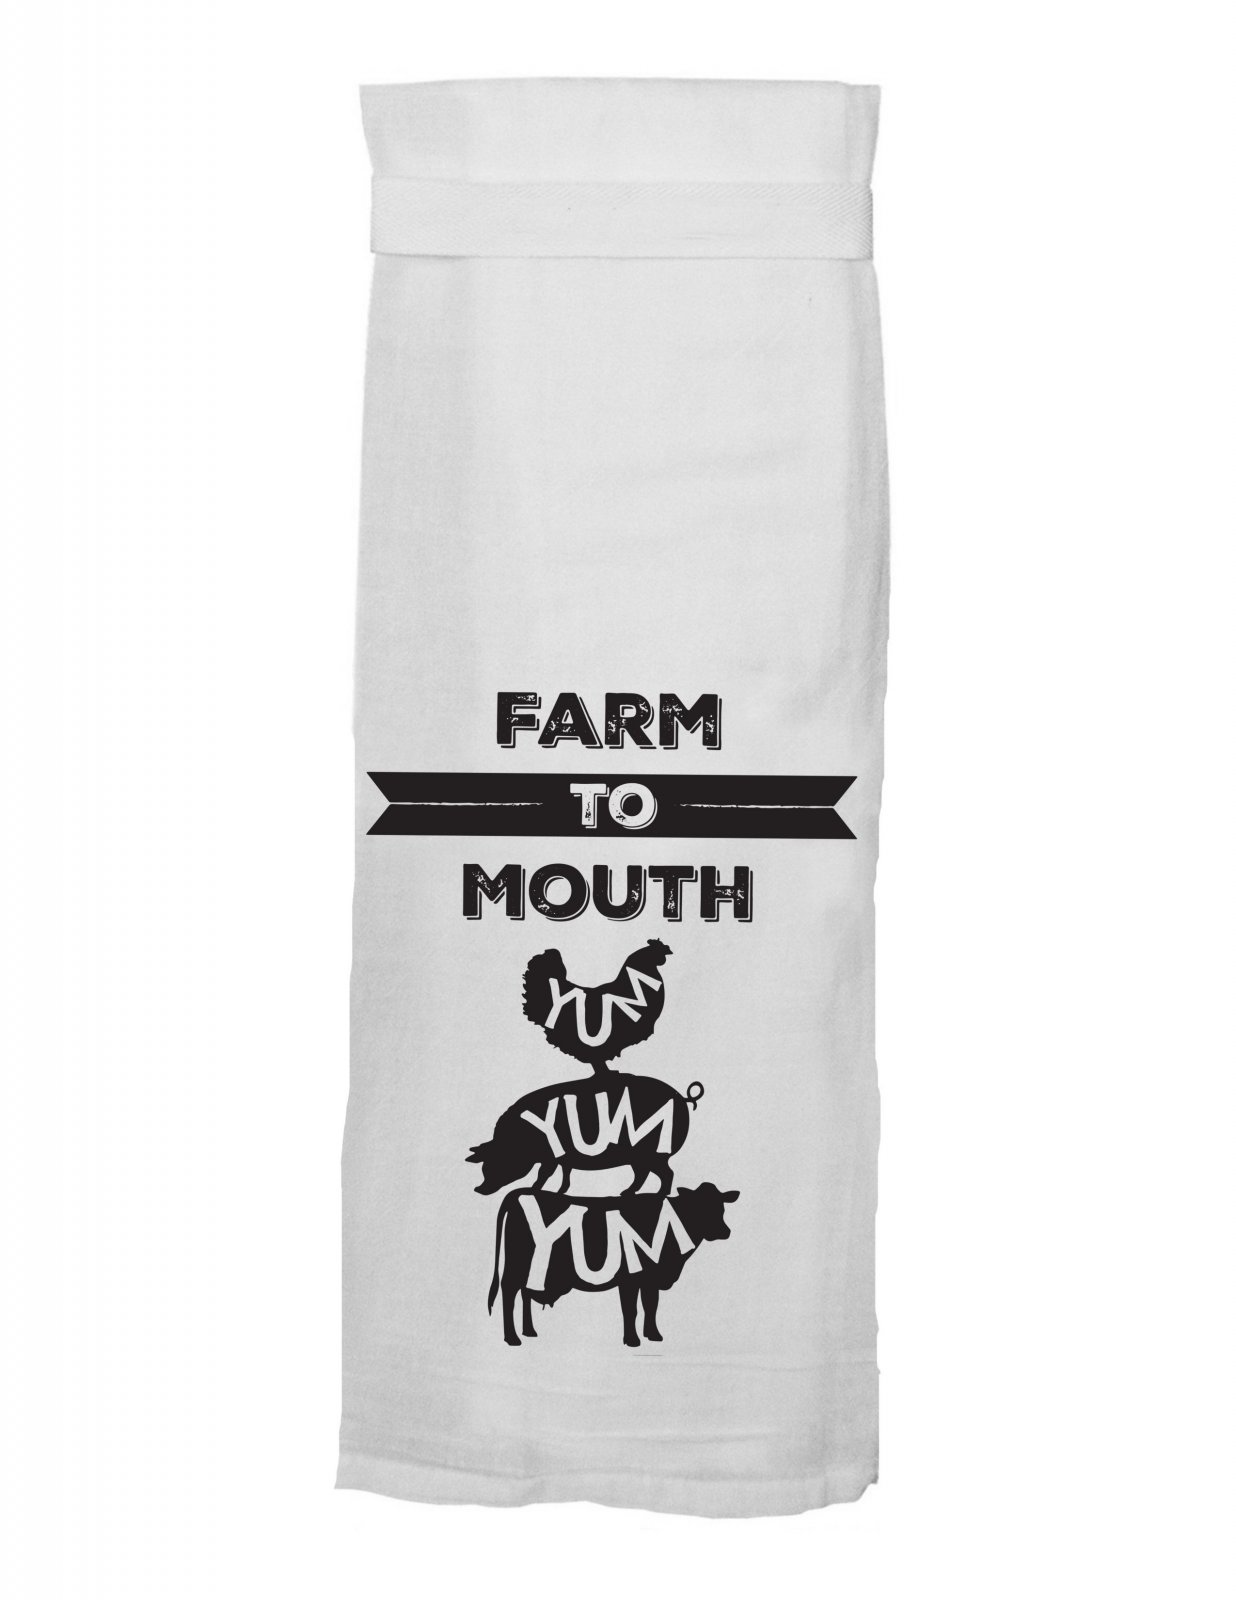 Flour Sack Towel - Farm to Mouth